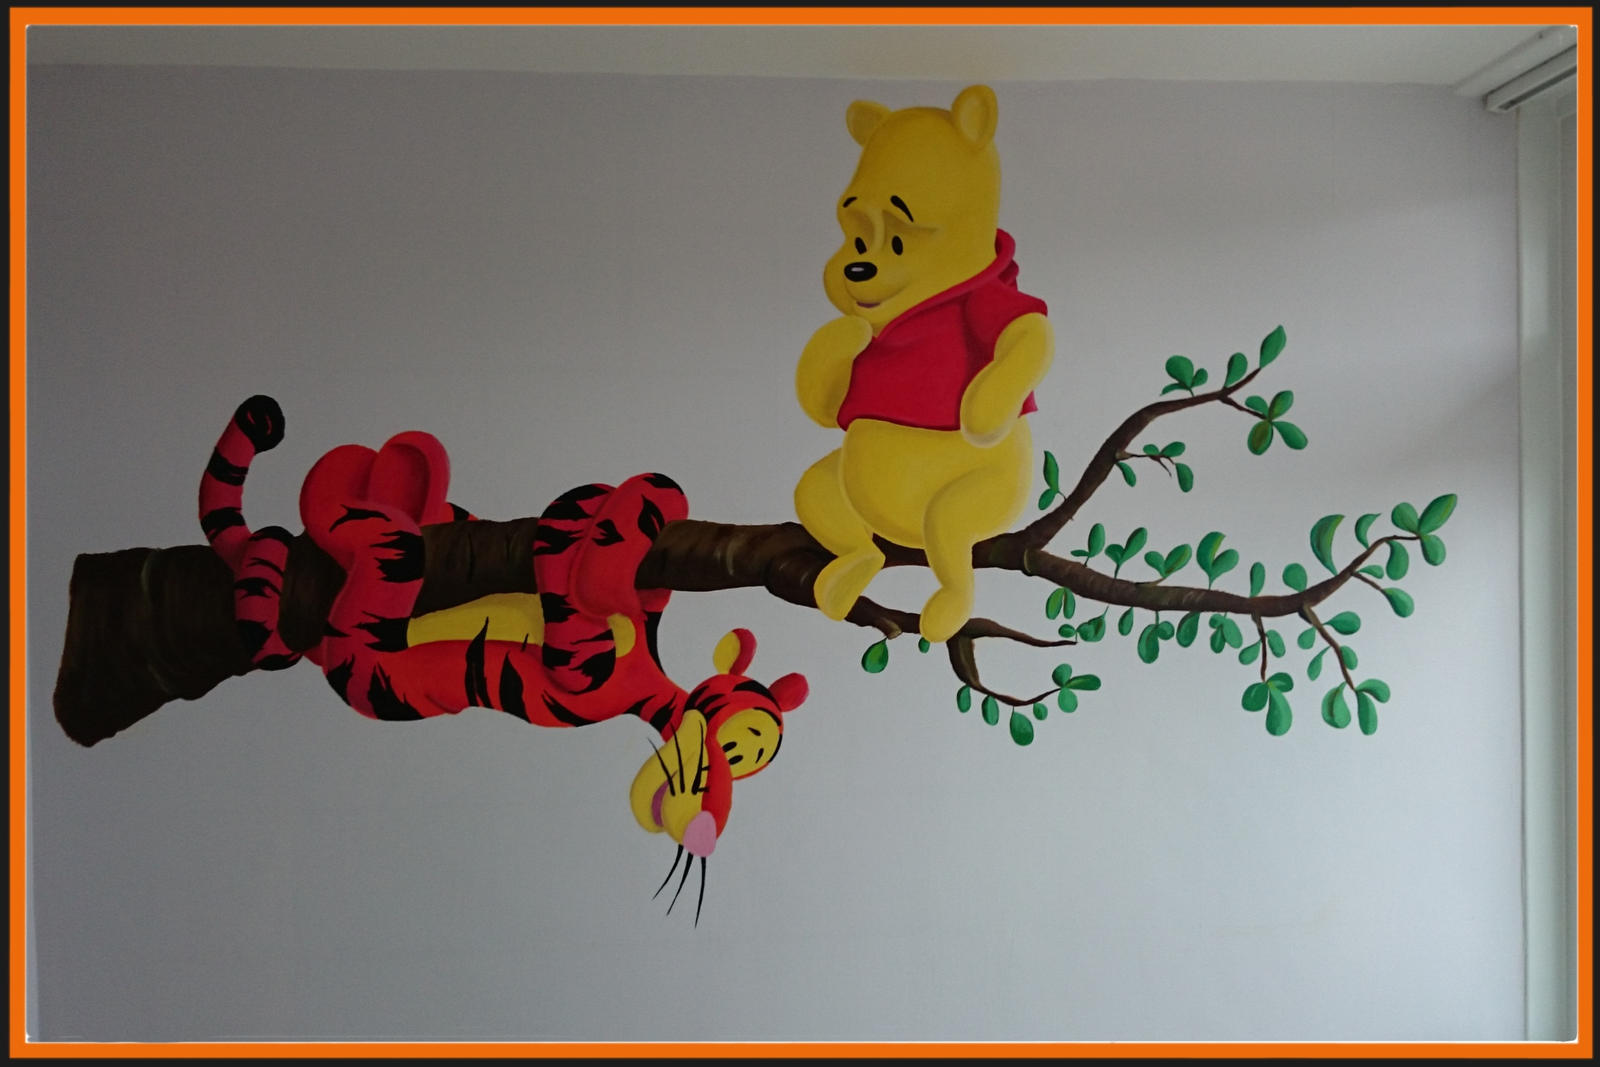 winnie the pooh and tiger wall mural by pikeo on deviantart. Black Bedroom Furniture Sets. Home Design Ideas